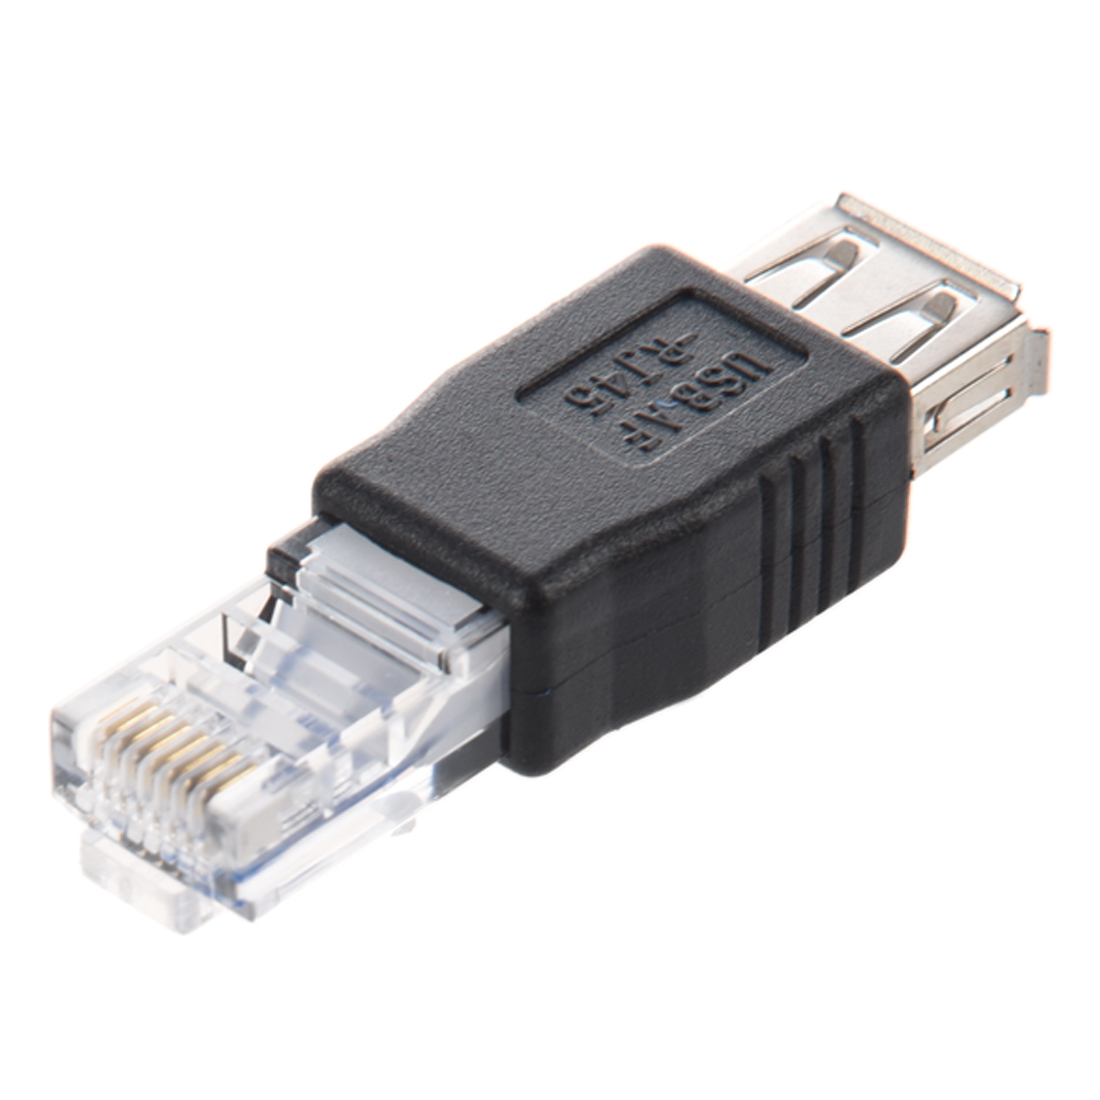 Usb A Female To Ethernet Rj45 Male Adapter Connector